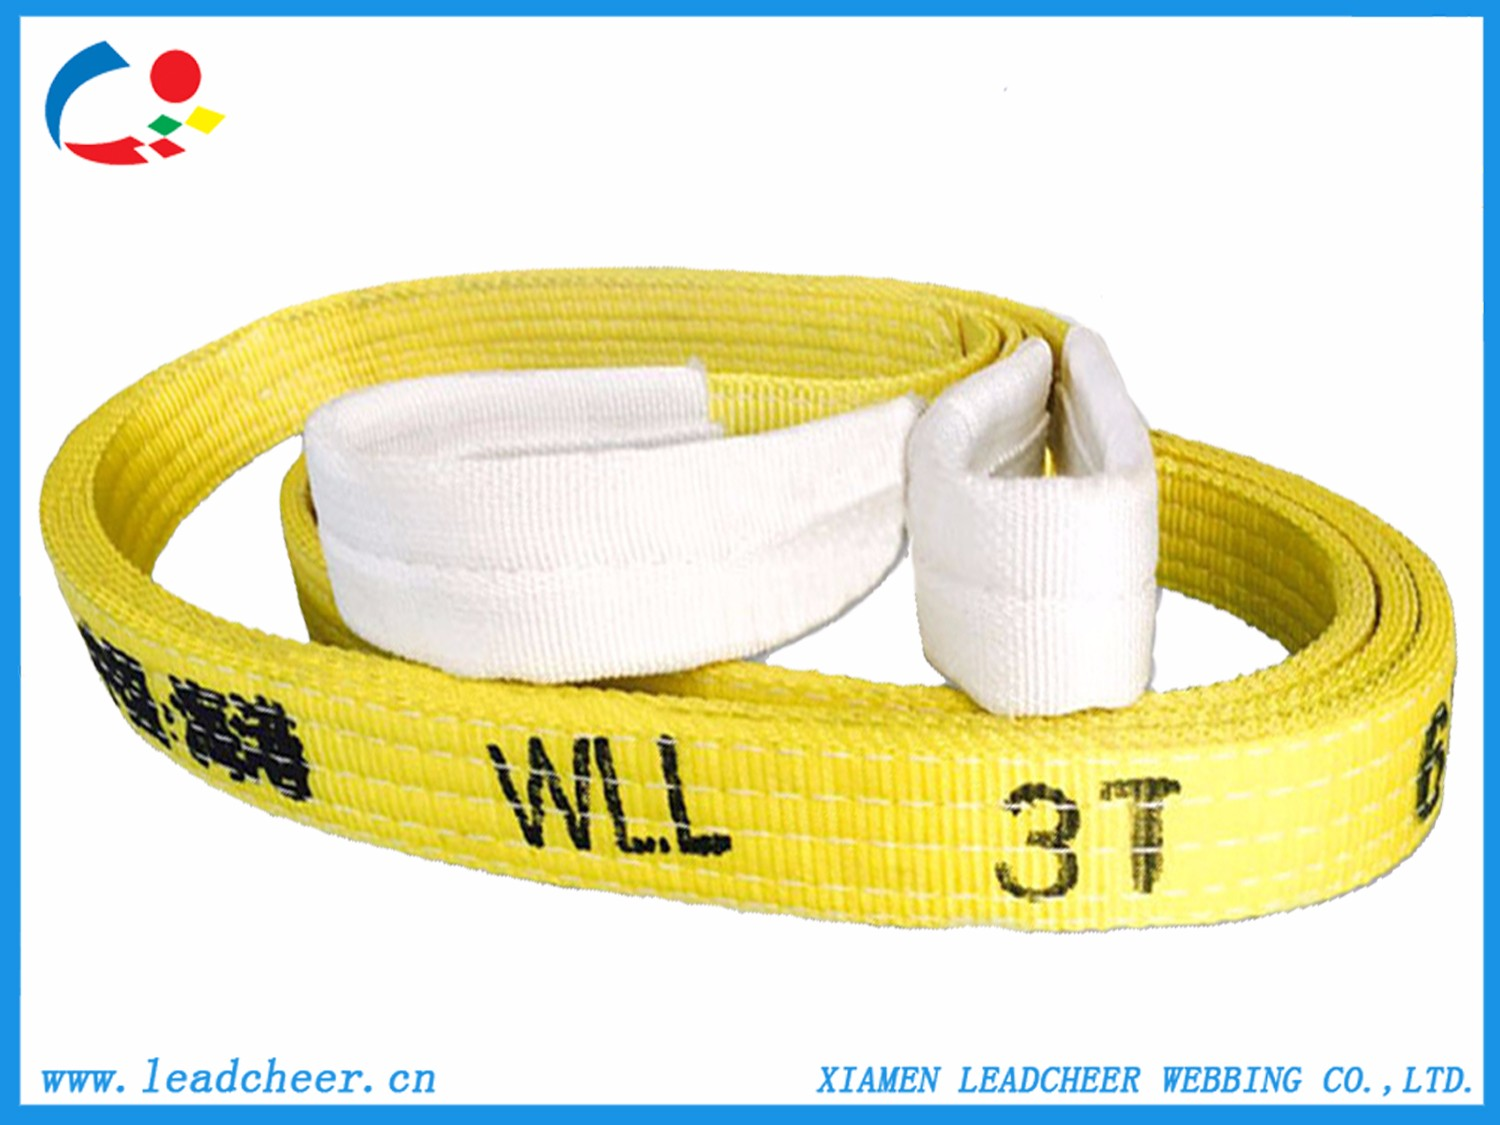 High quality Manufactuer High Quality Heavy Duty Strap For Cargo Quotes,China Manufactuer High Quality Heavy Duty Strap For Cargo Factory,Manufactuer High Quality Heavy Duty Strap For Cargo Purchasing